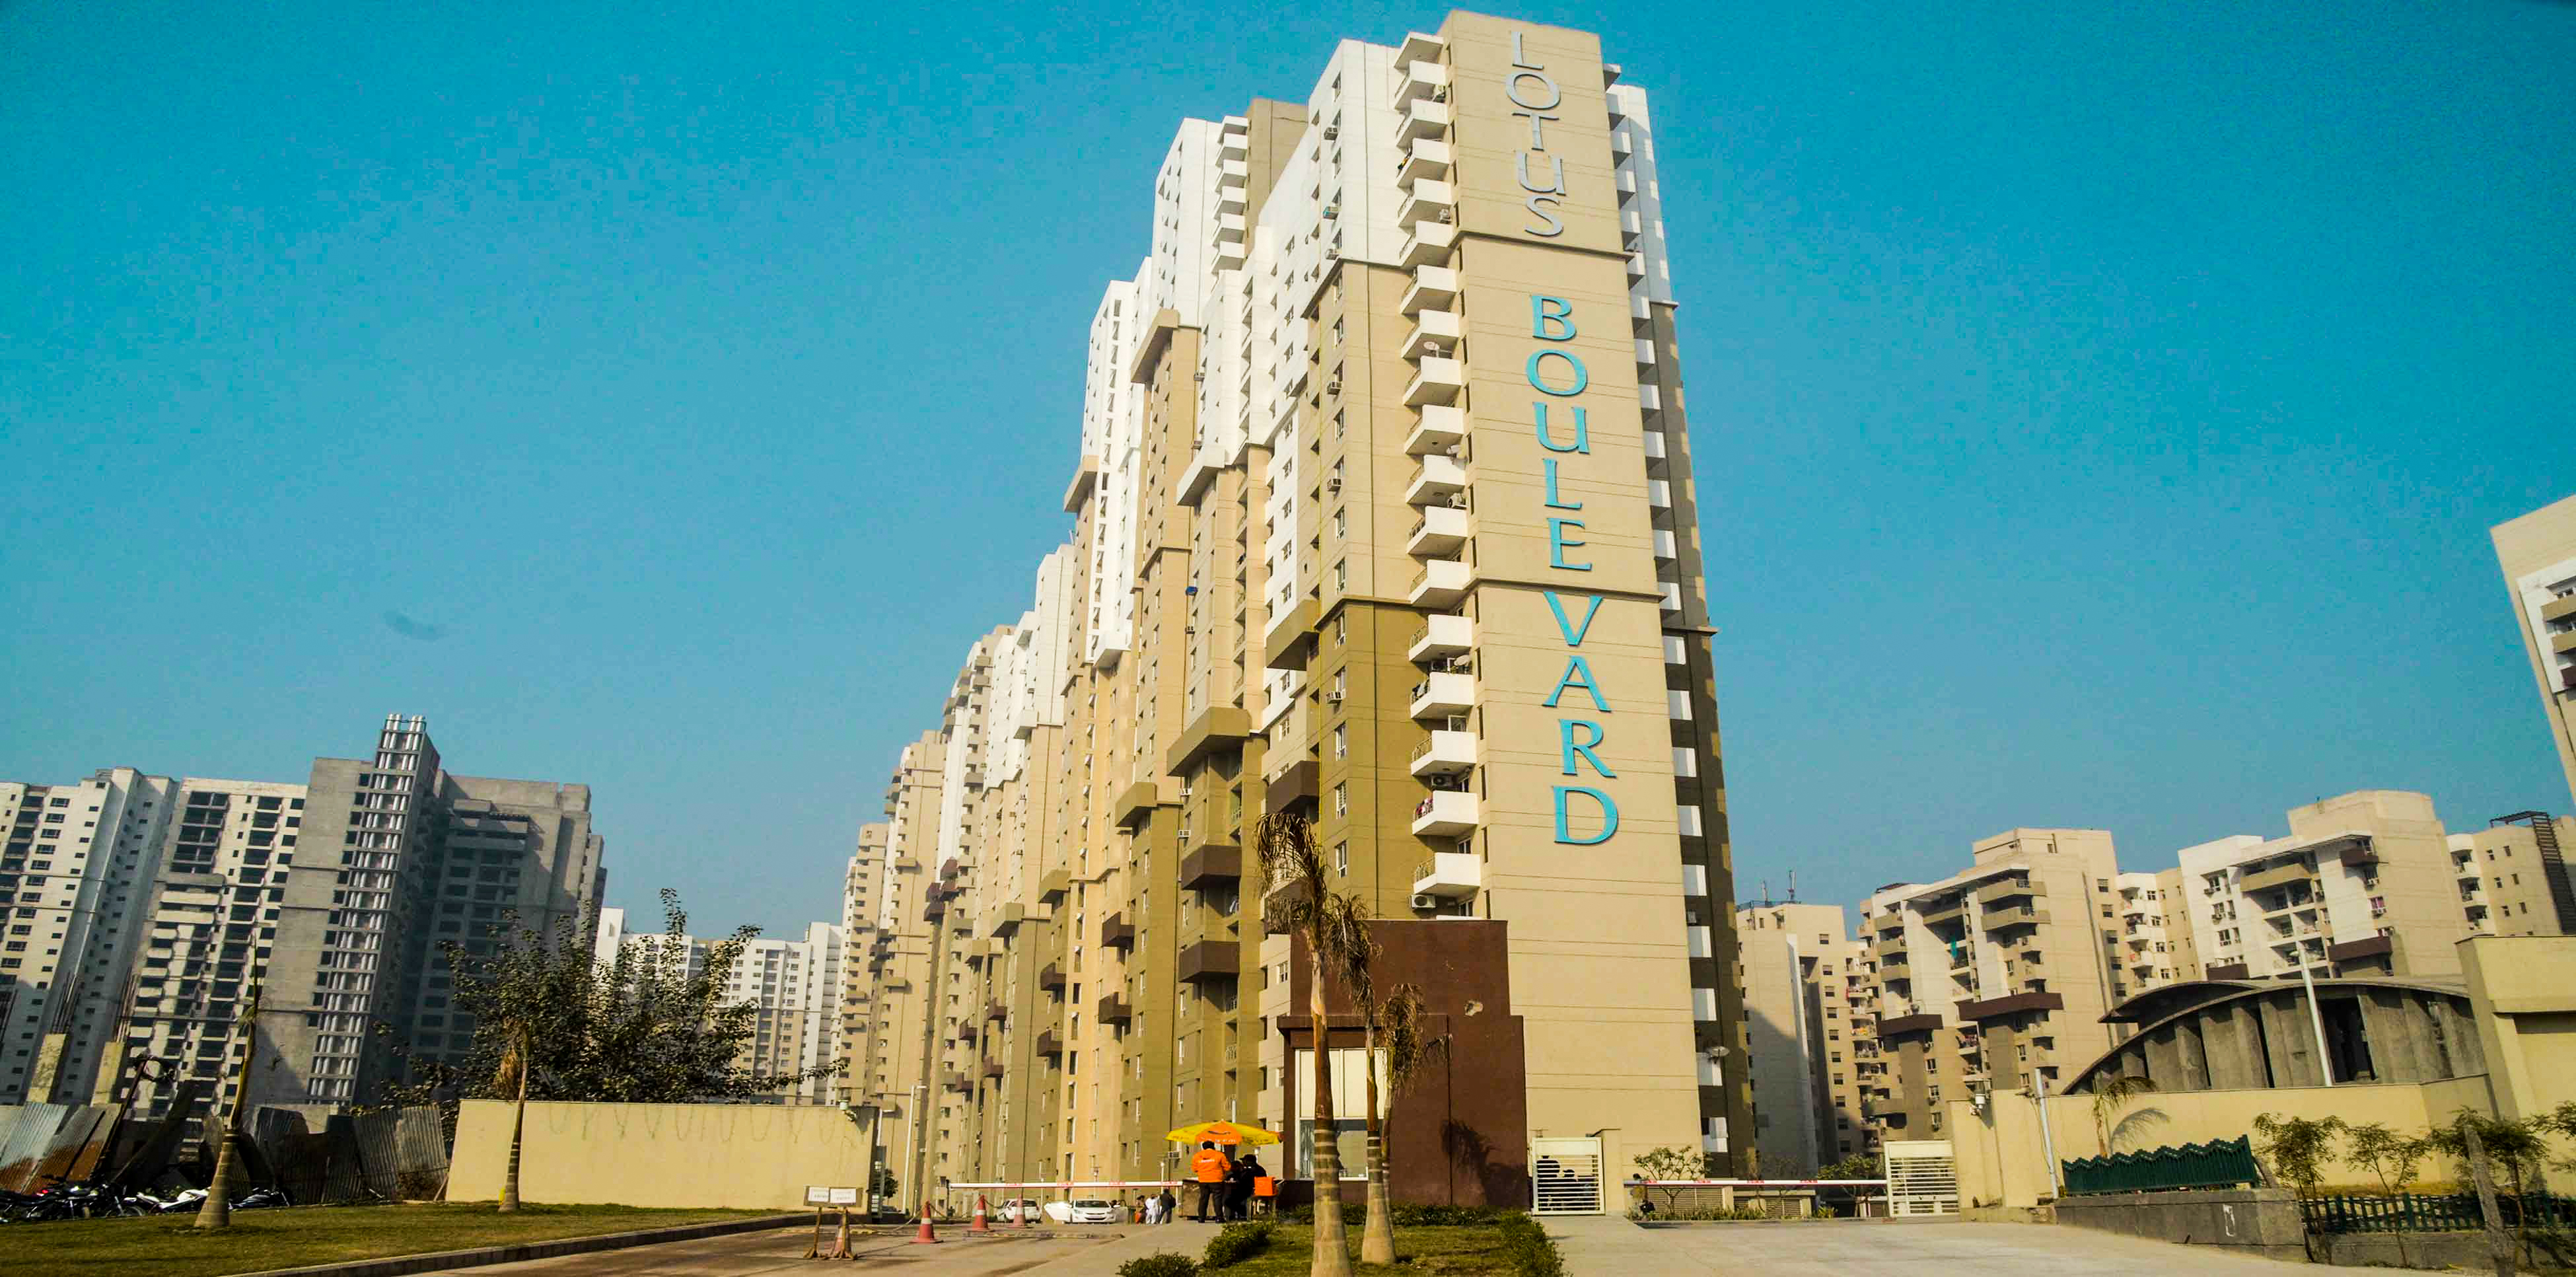 Noida: 3C home buyers upbeat over RERA's forensic audit order